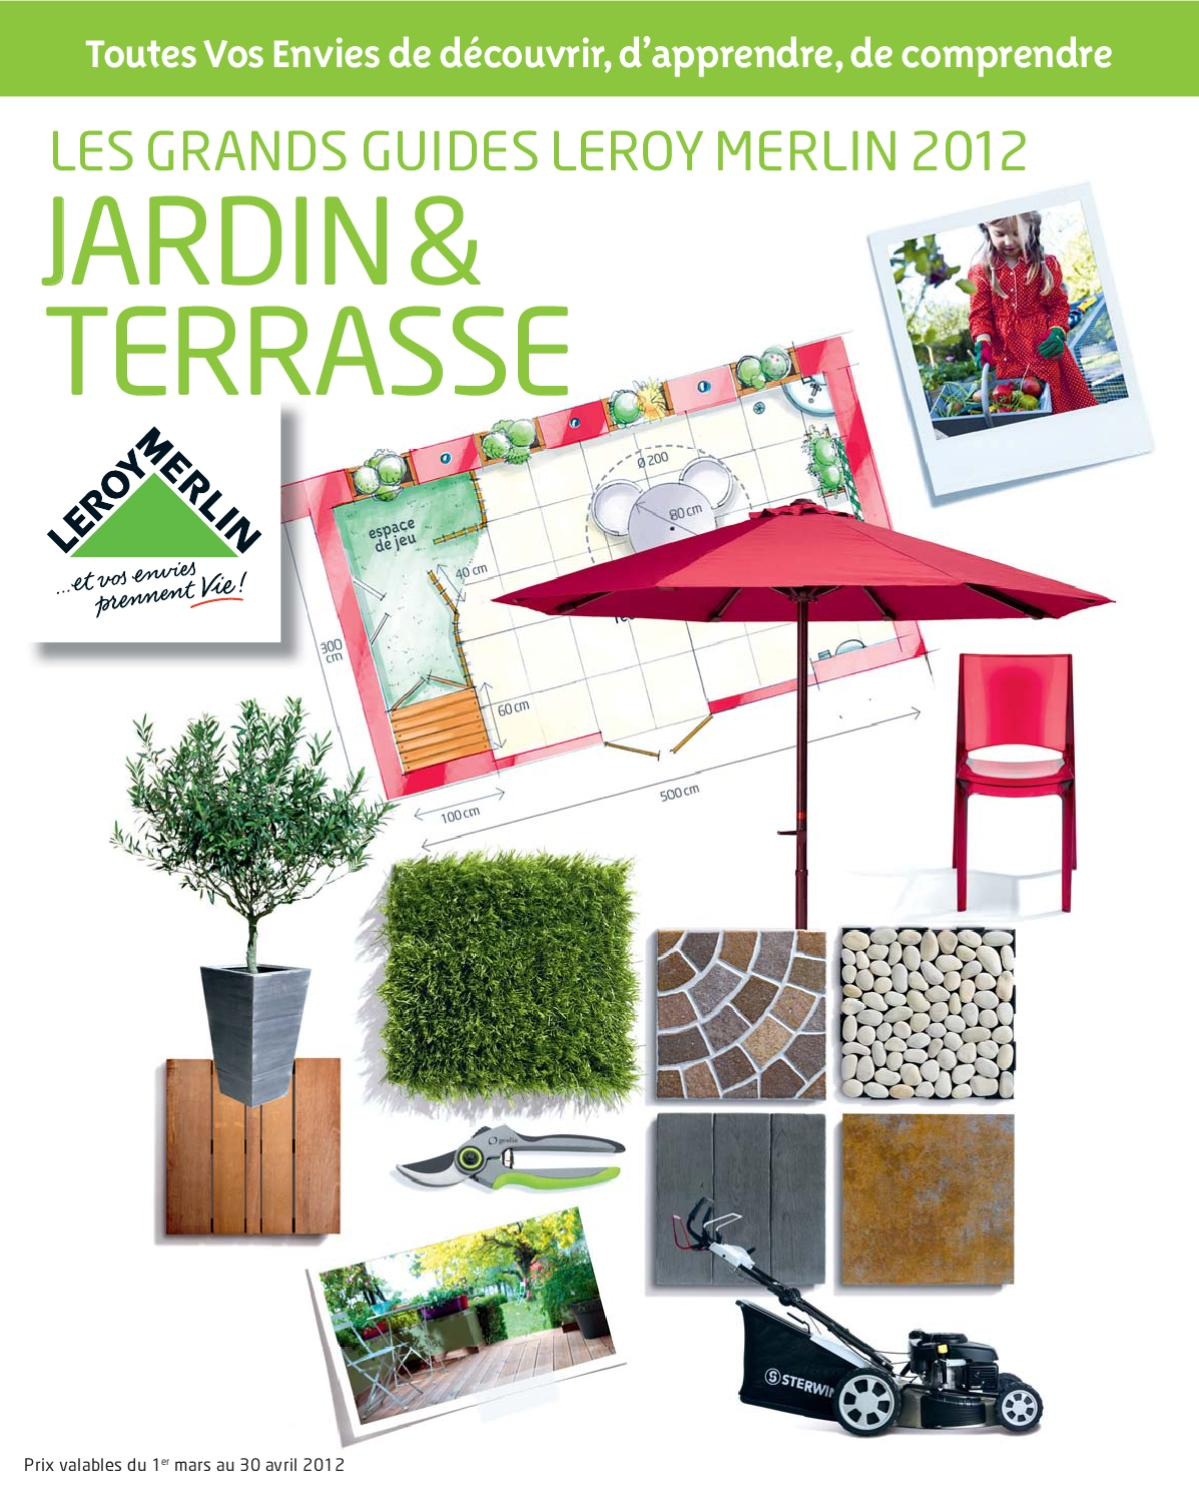 Element Pilier Leroy Merlin catalogue jardin leroy merlinmarcel - issuu